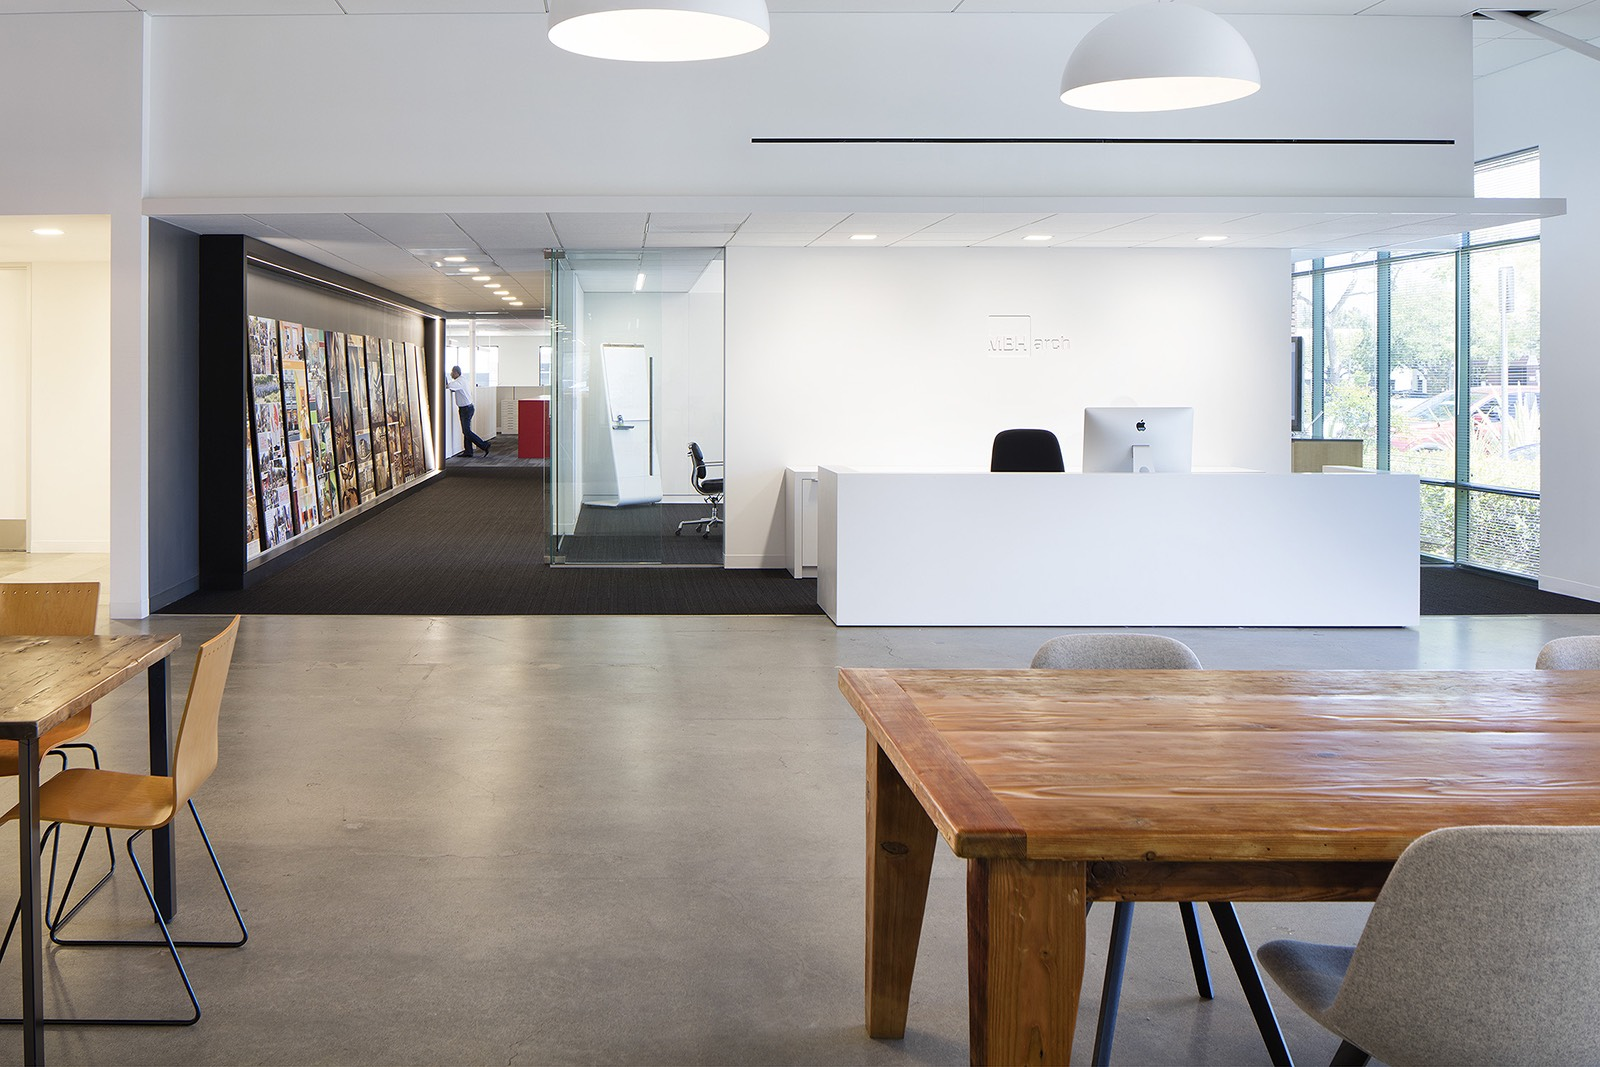 mbh-architects-office-1